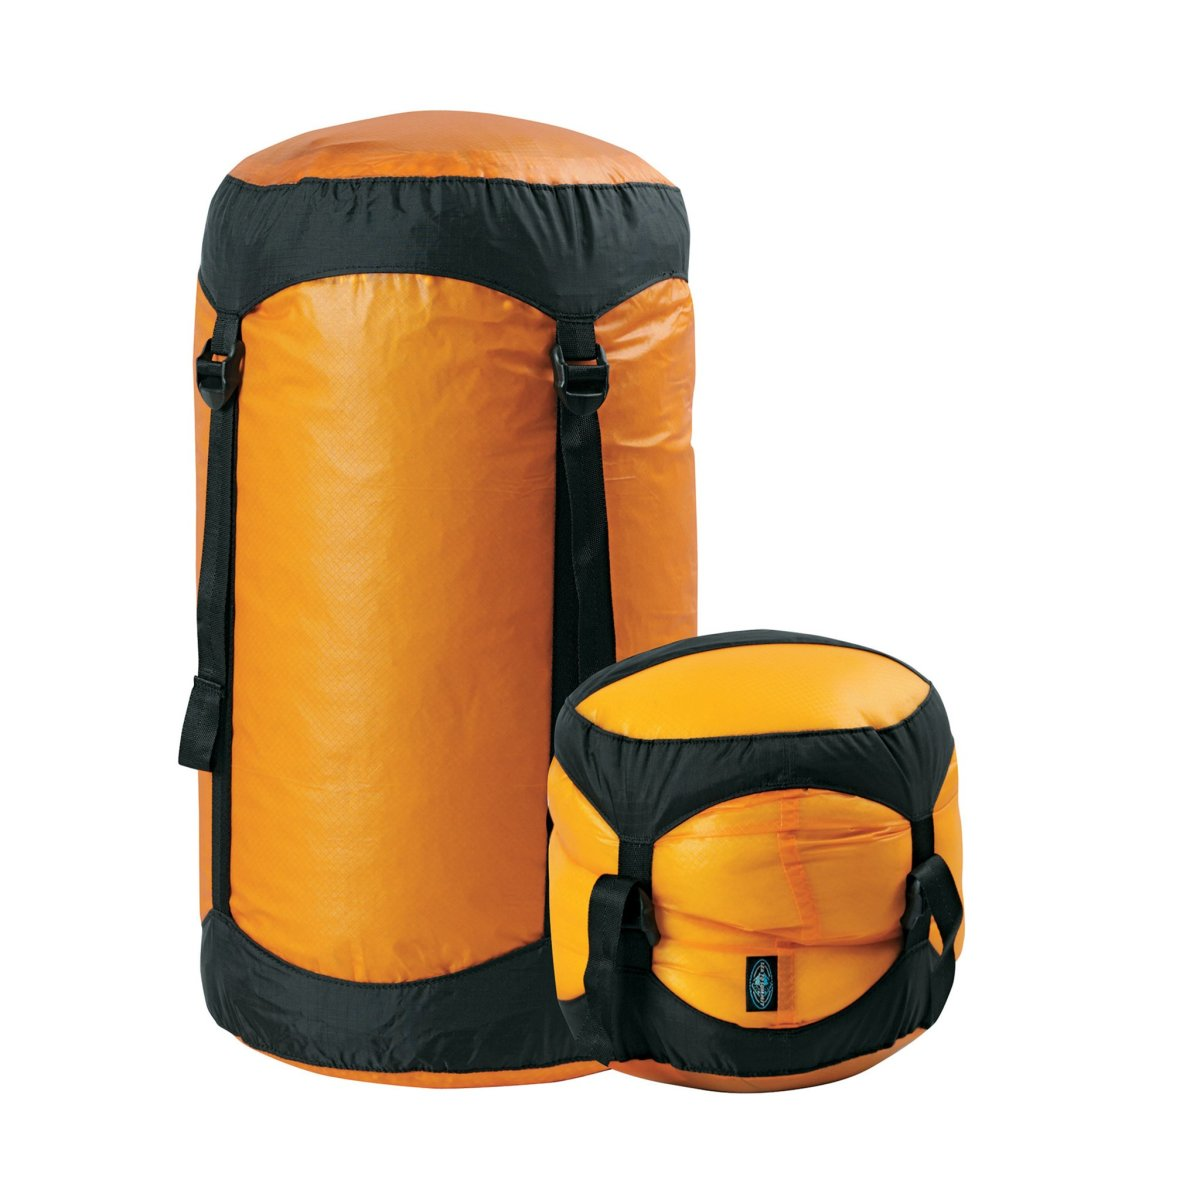 Чехол Sea to summit Ultra-Sil Compression Sack компрессионный Yellow, S Чехол Sea to 9sum1mit Ultra-Sil Compression Sack компрессионный Green, S 3